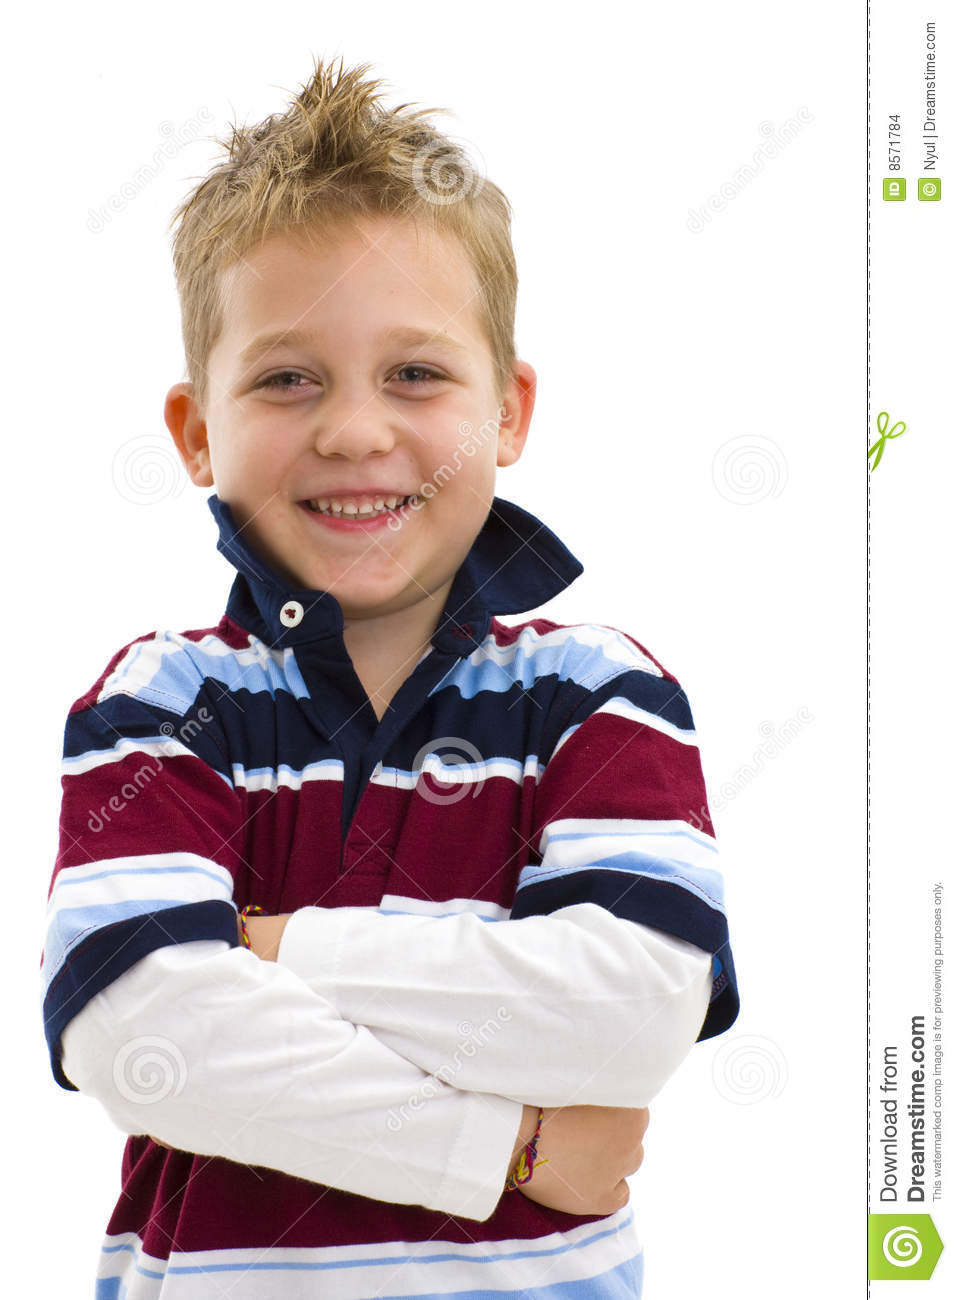 Boy With Arms Crossed Stock Images - Image: 8571784